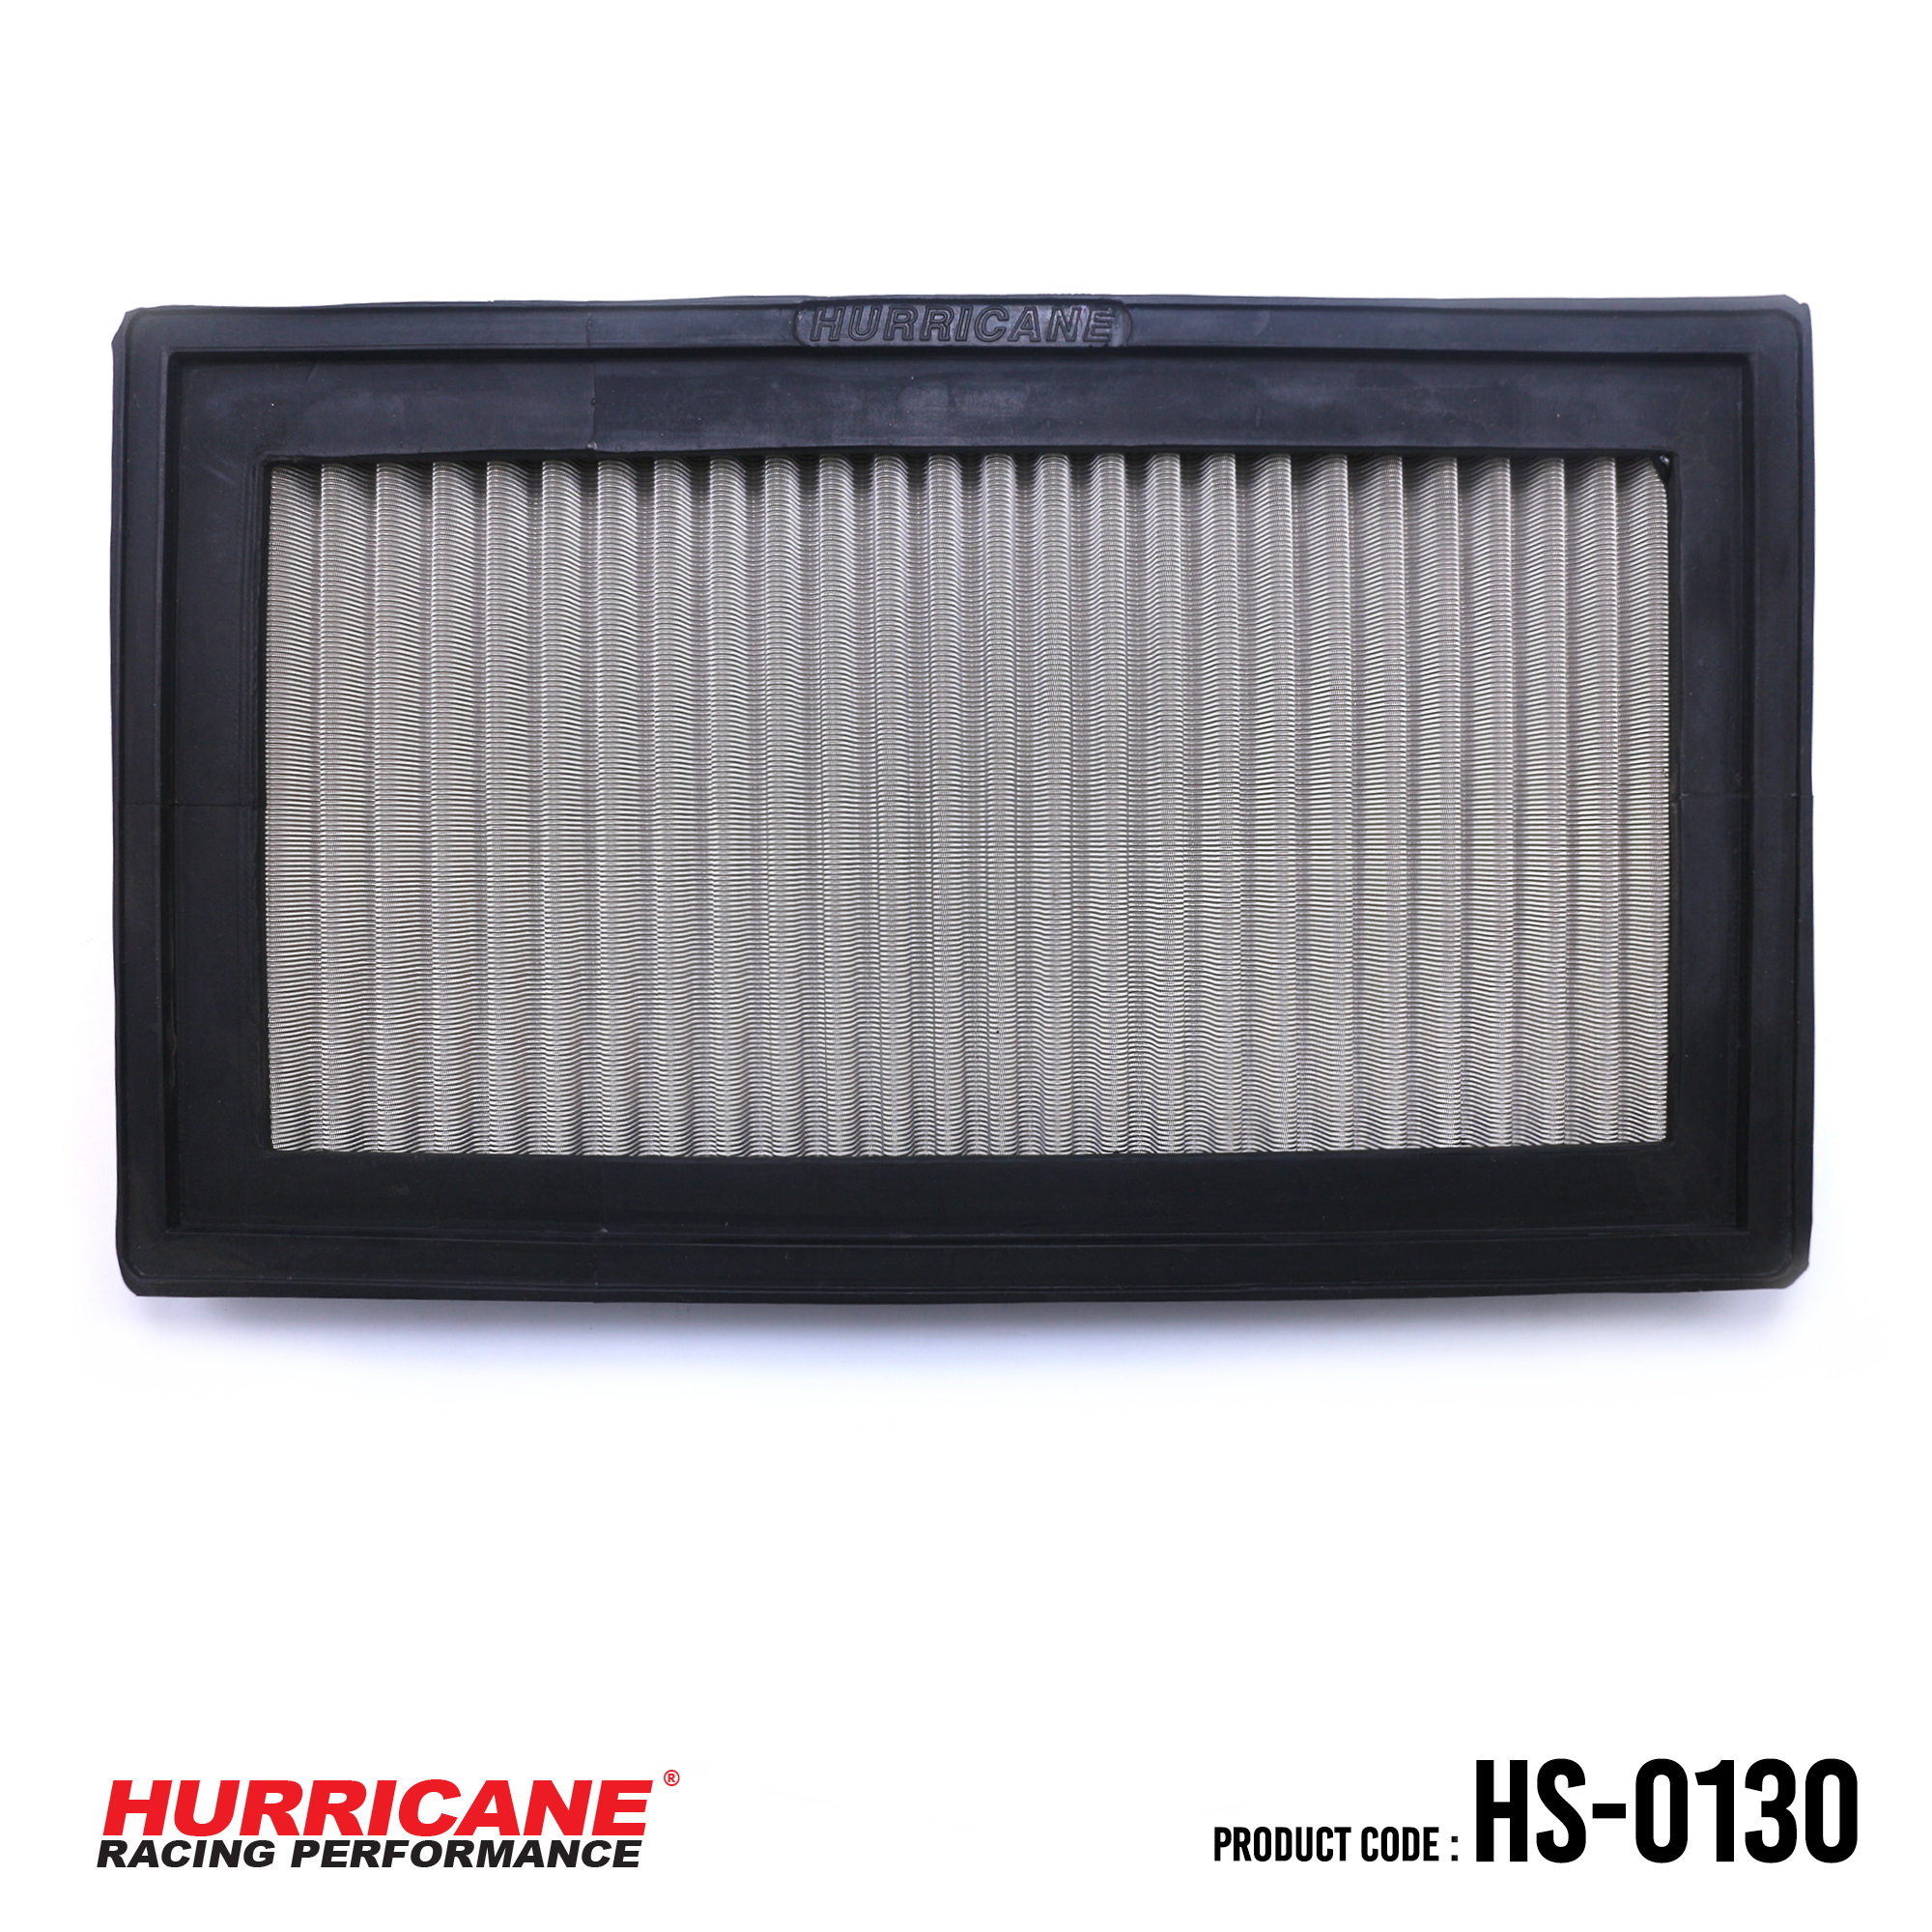 HURRICANE STAINLESS STEEL AIR FILTER FOR HS-0130 Saab